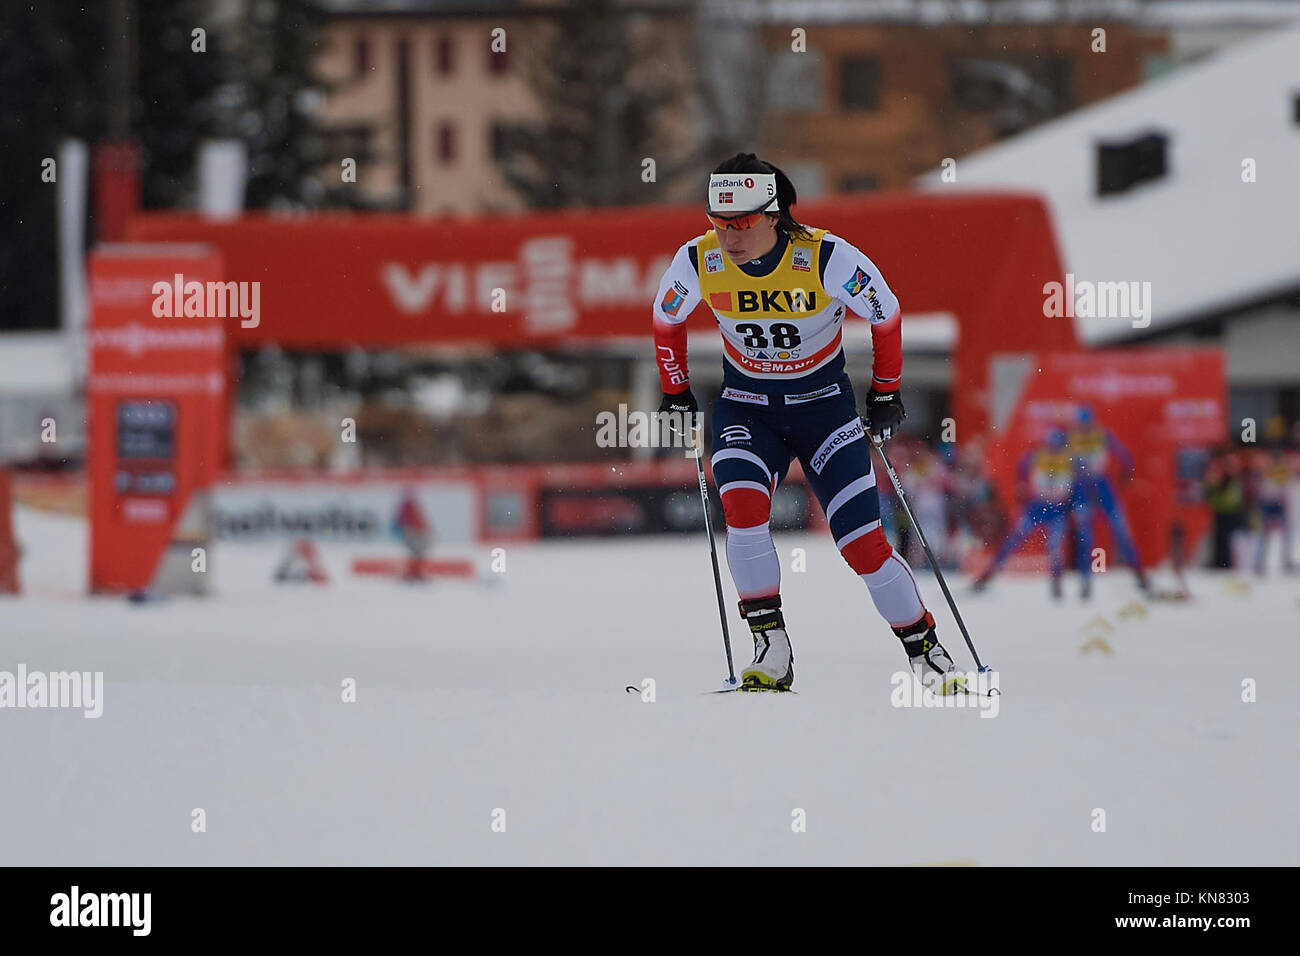 Davos, Switzerland, 10th December 2017. BJOERGEN Marit (NOR) during the Ladies' 10 km F competition at the FIS Cross - Stock Image